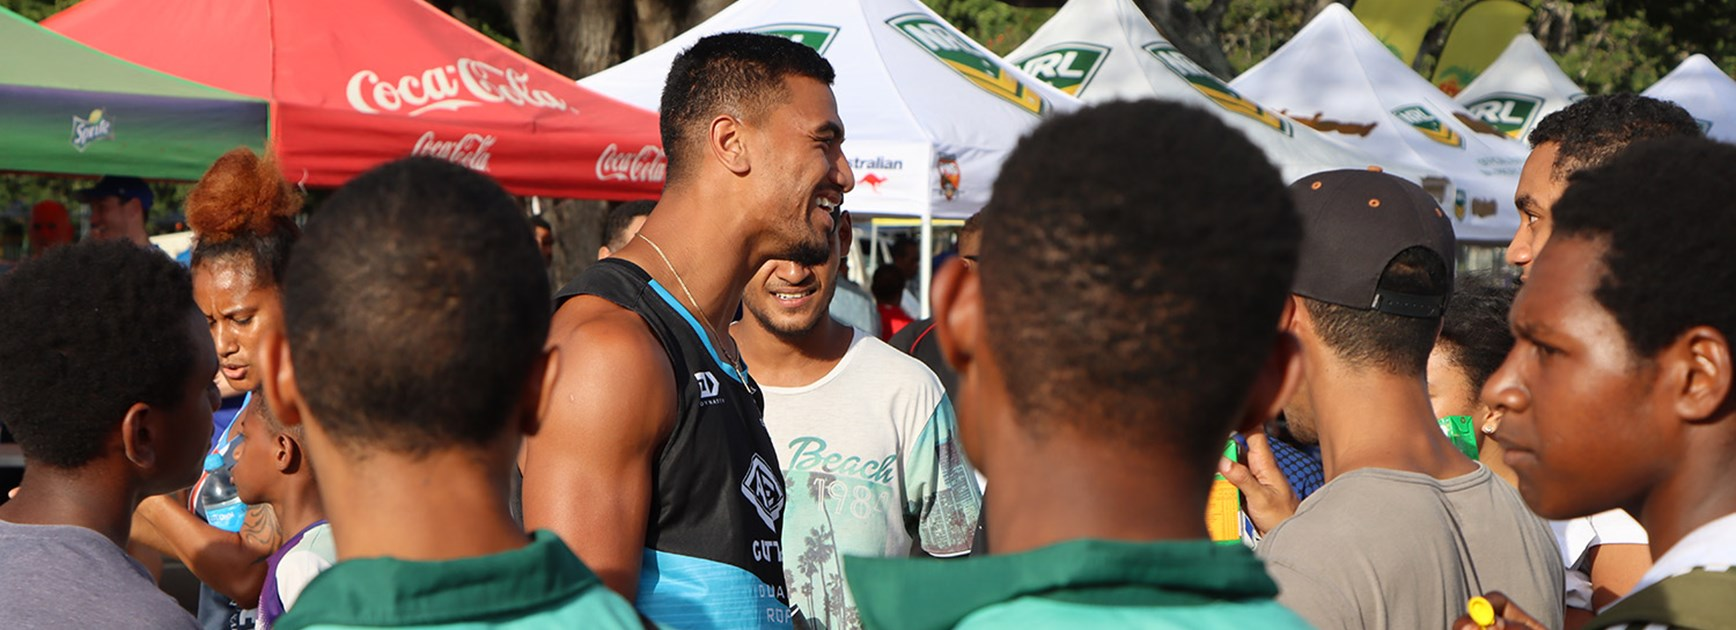 Price, Magoulias get hero's welcome as Bulldogs, Sharks arrive in PNG